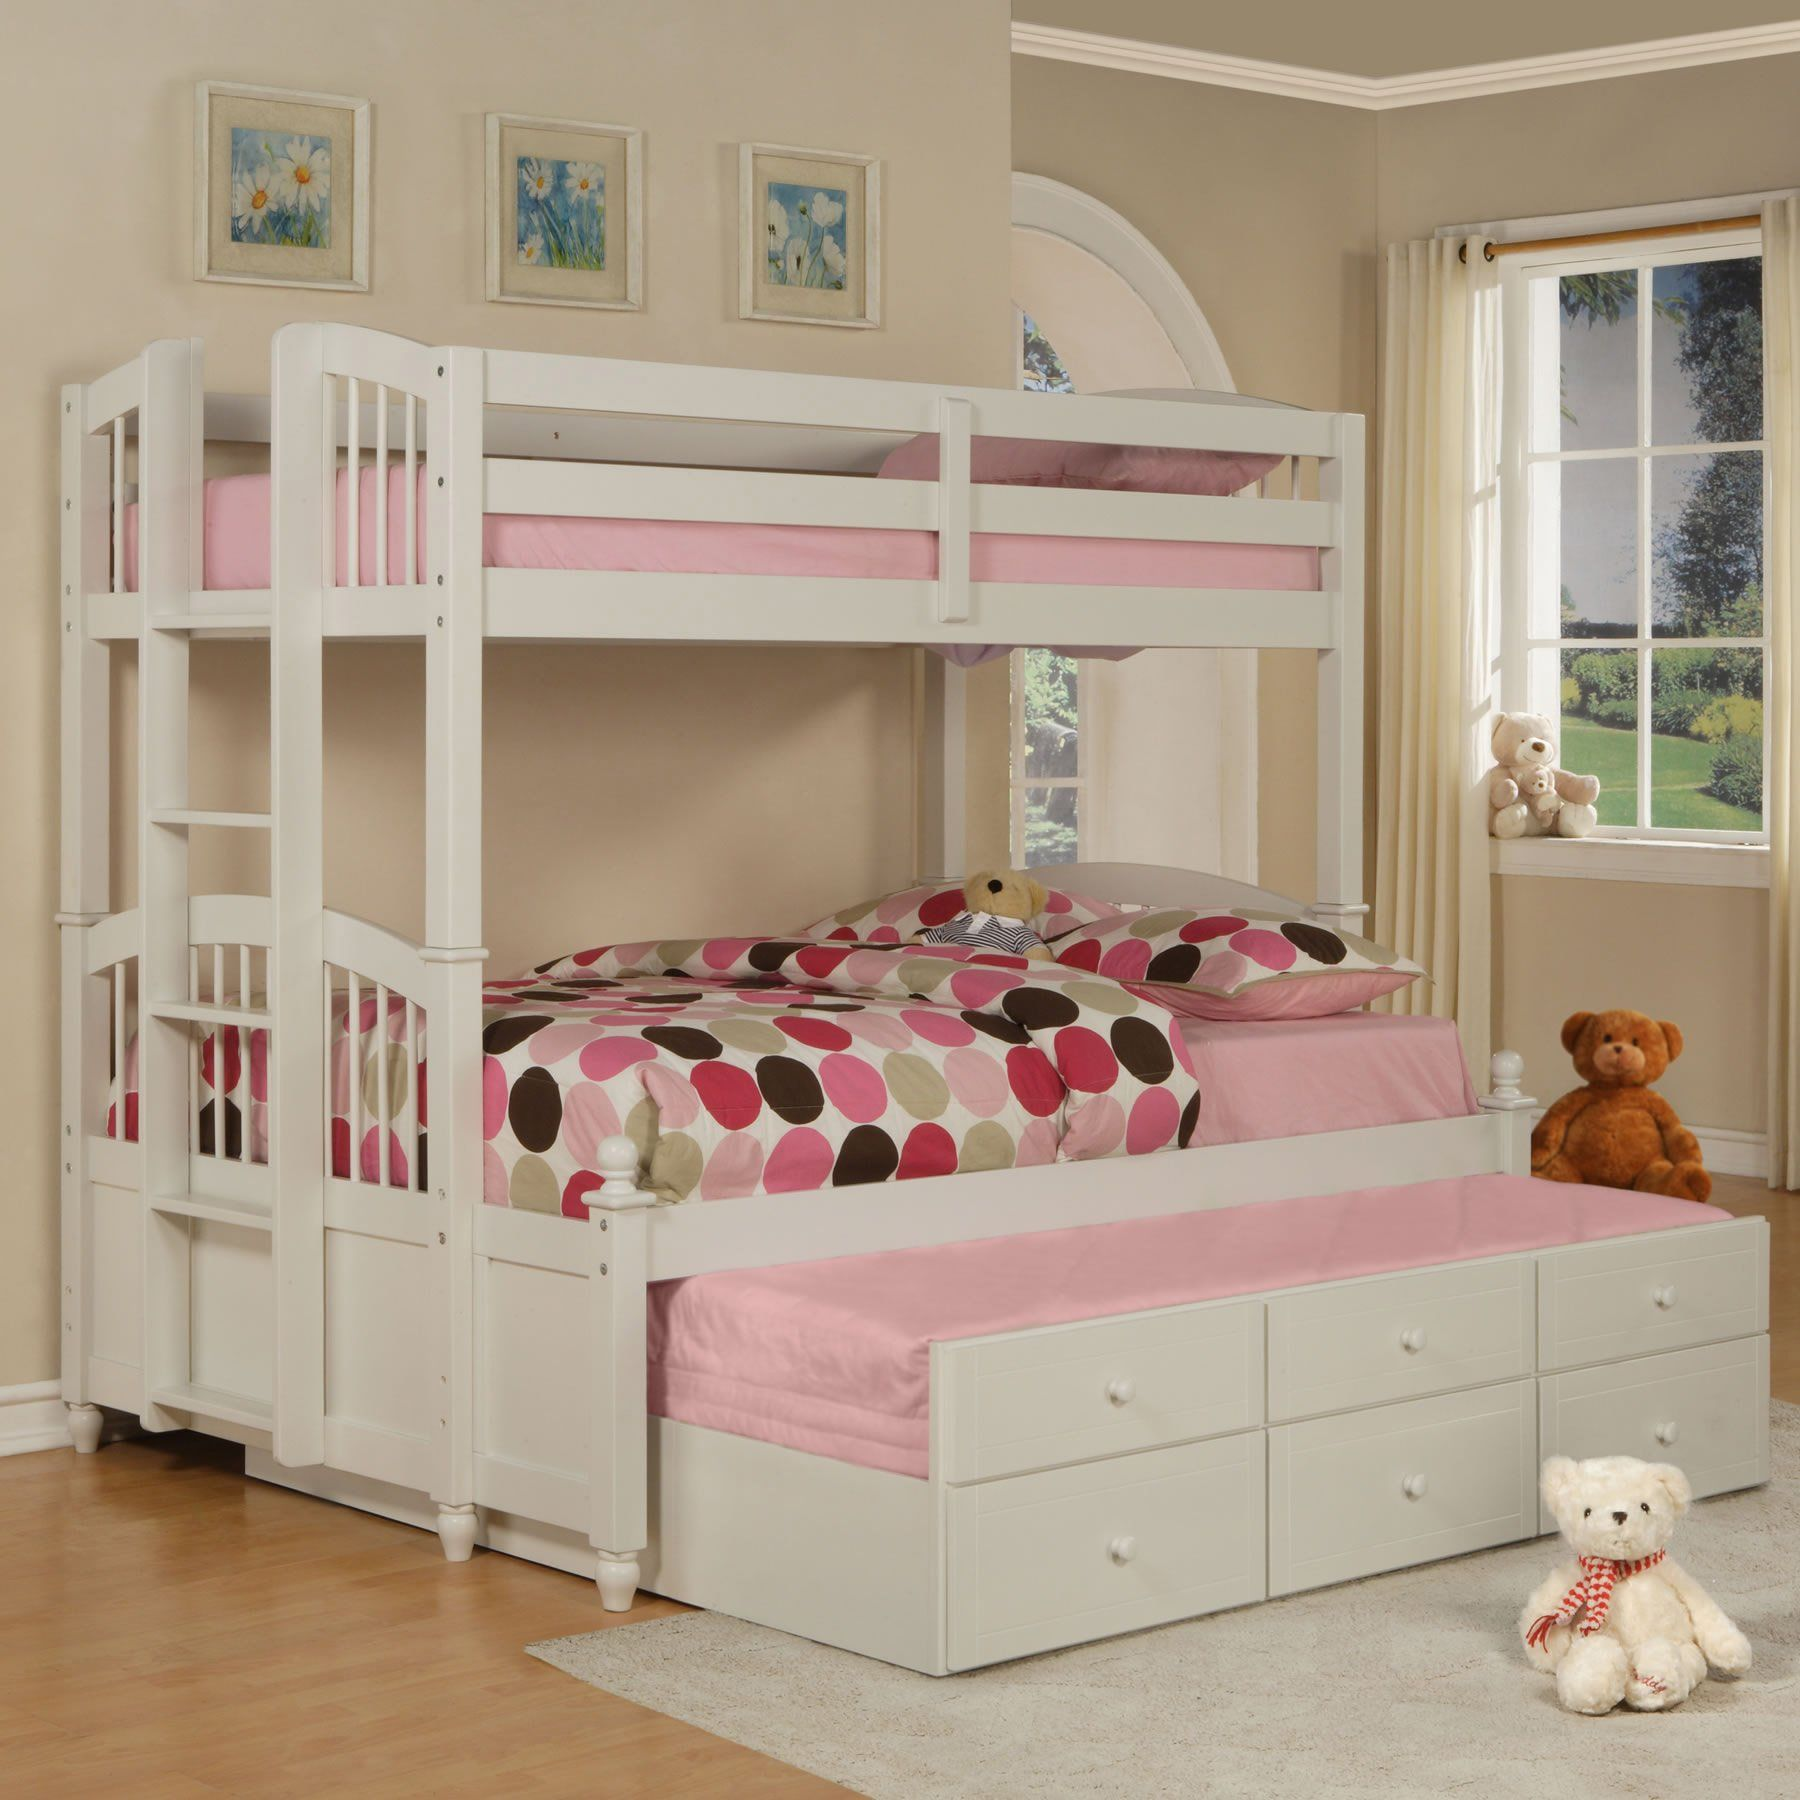 This is perfect for the girls Love it Storage bed for both